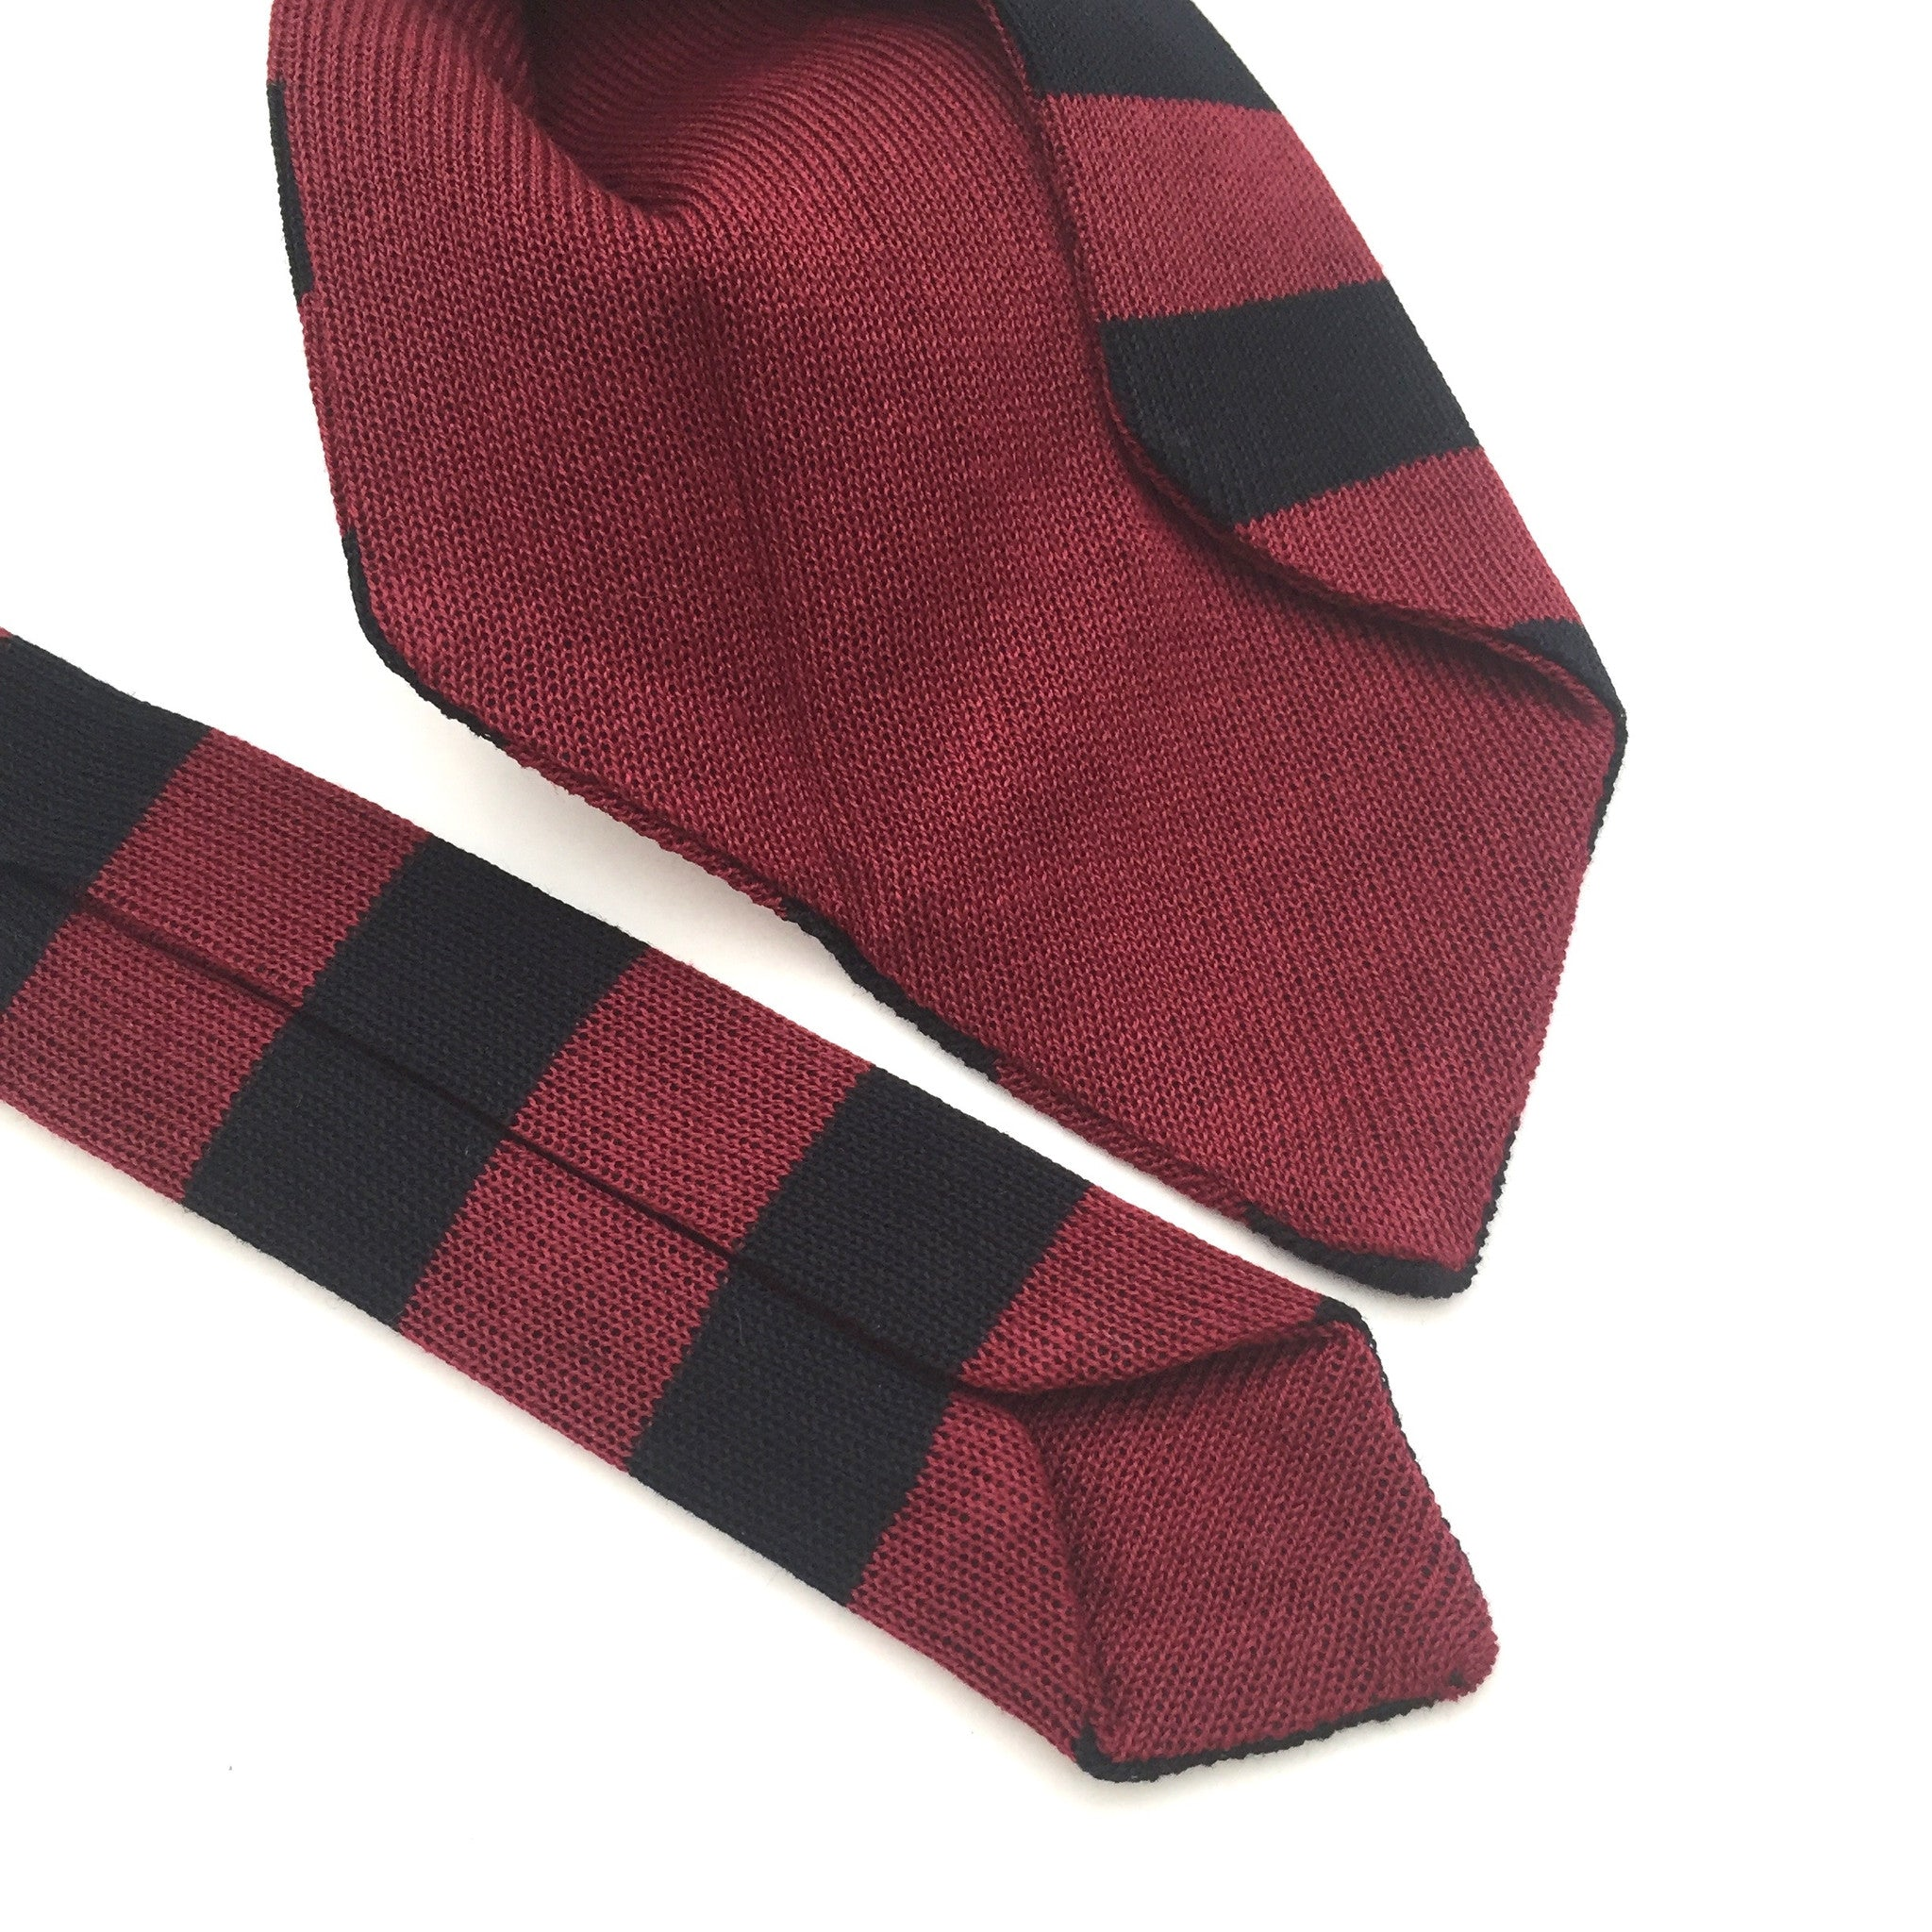 Gucci - Red & Black Knit Tie